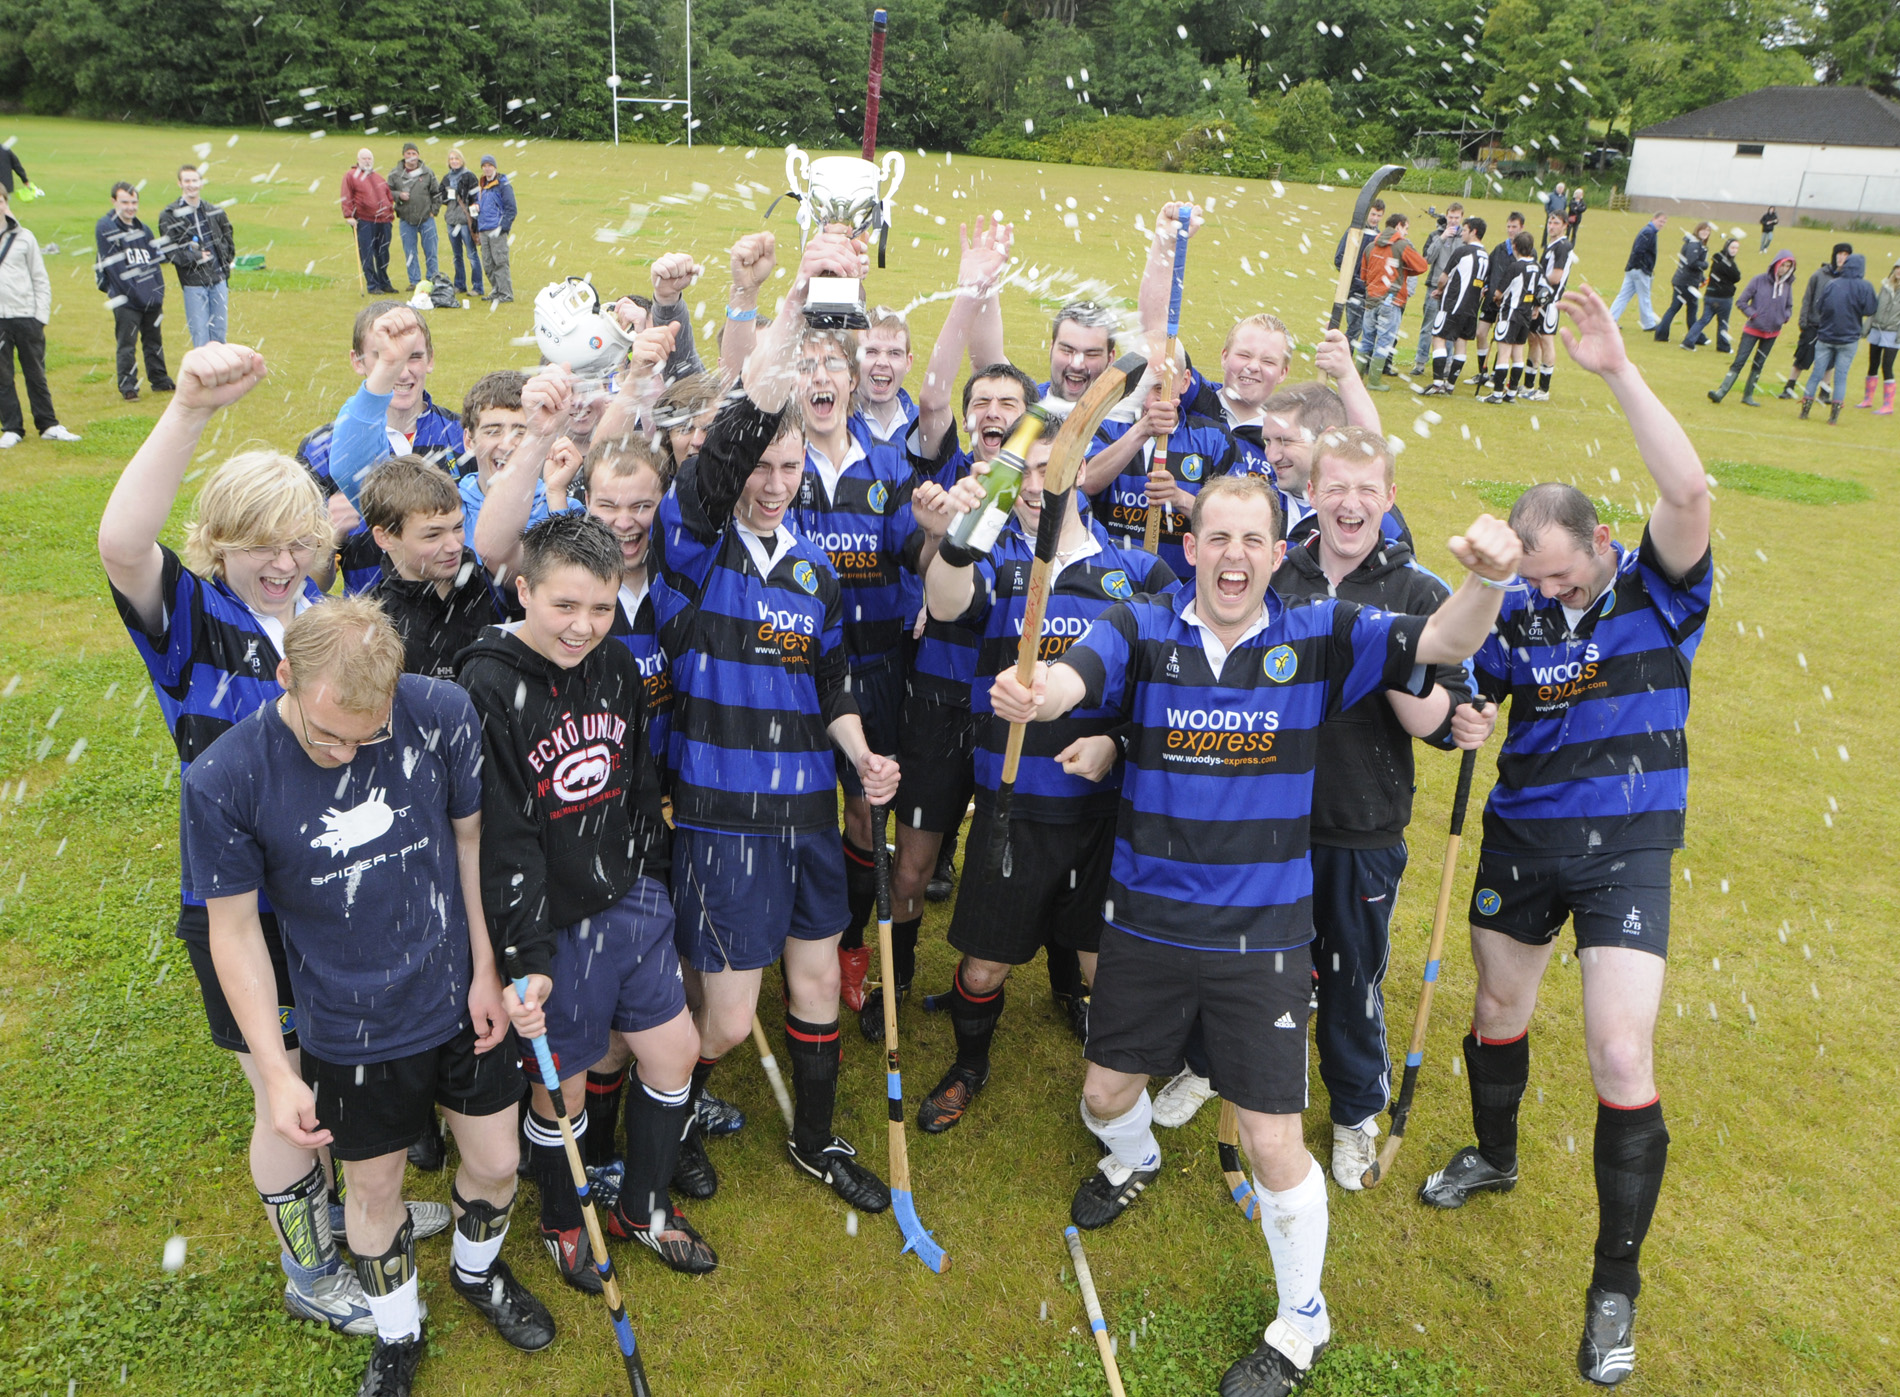 Lewis Camanachd Pipped For 2011 Sunday Mail & sportscotland Award